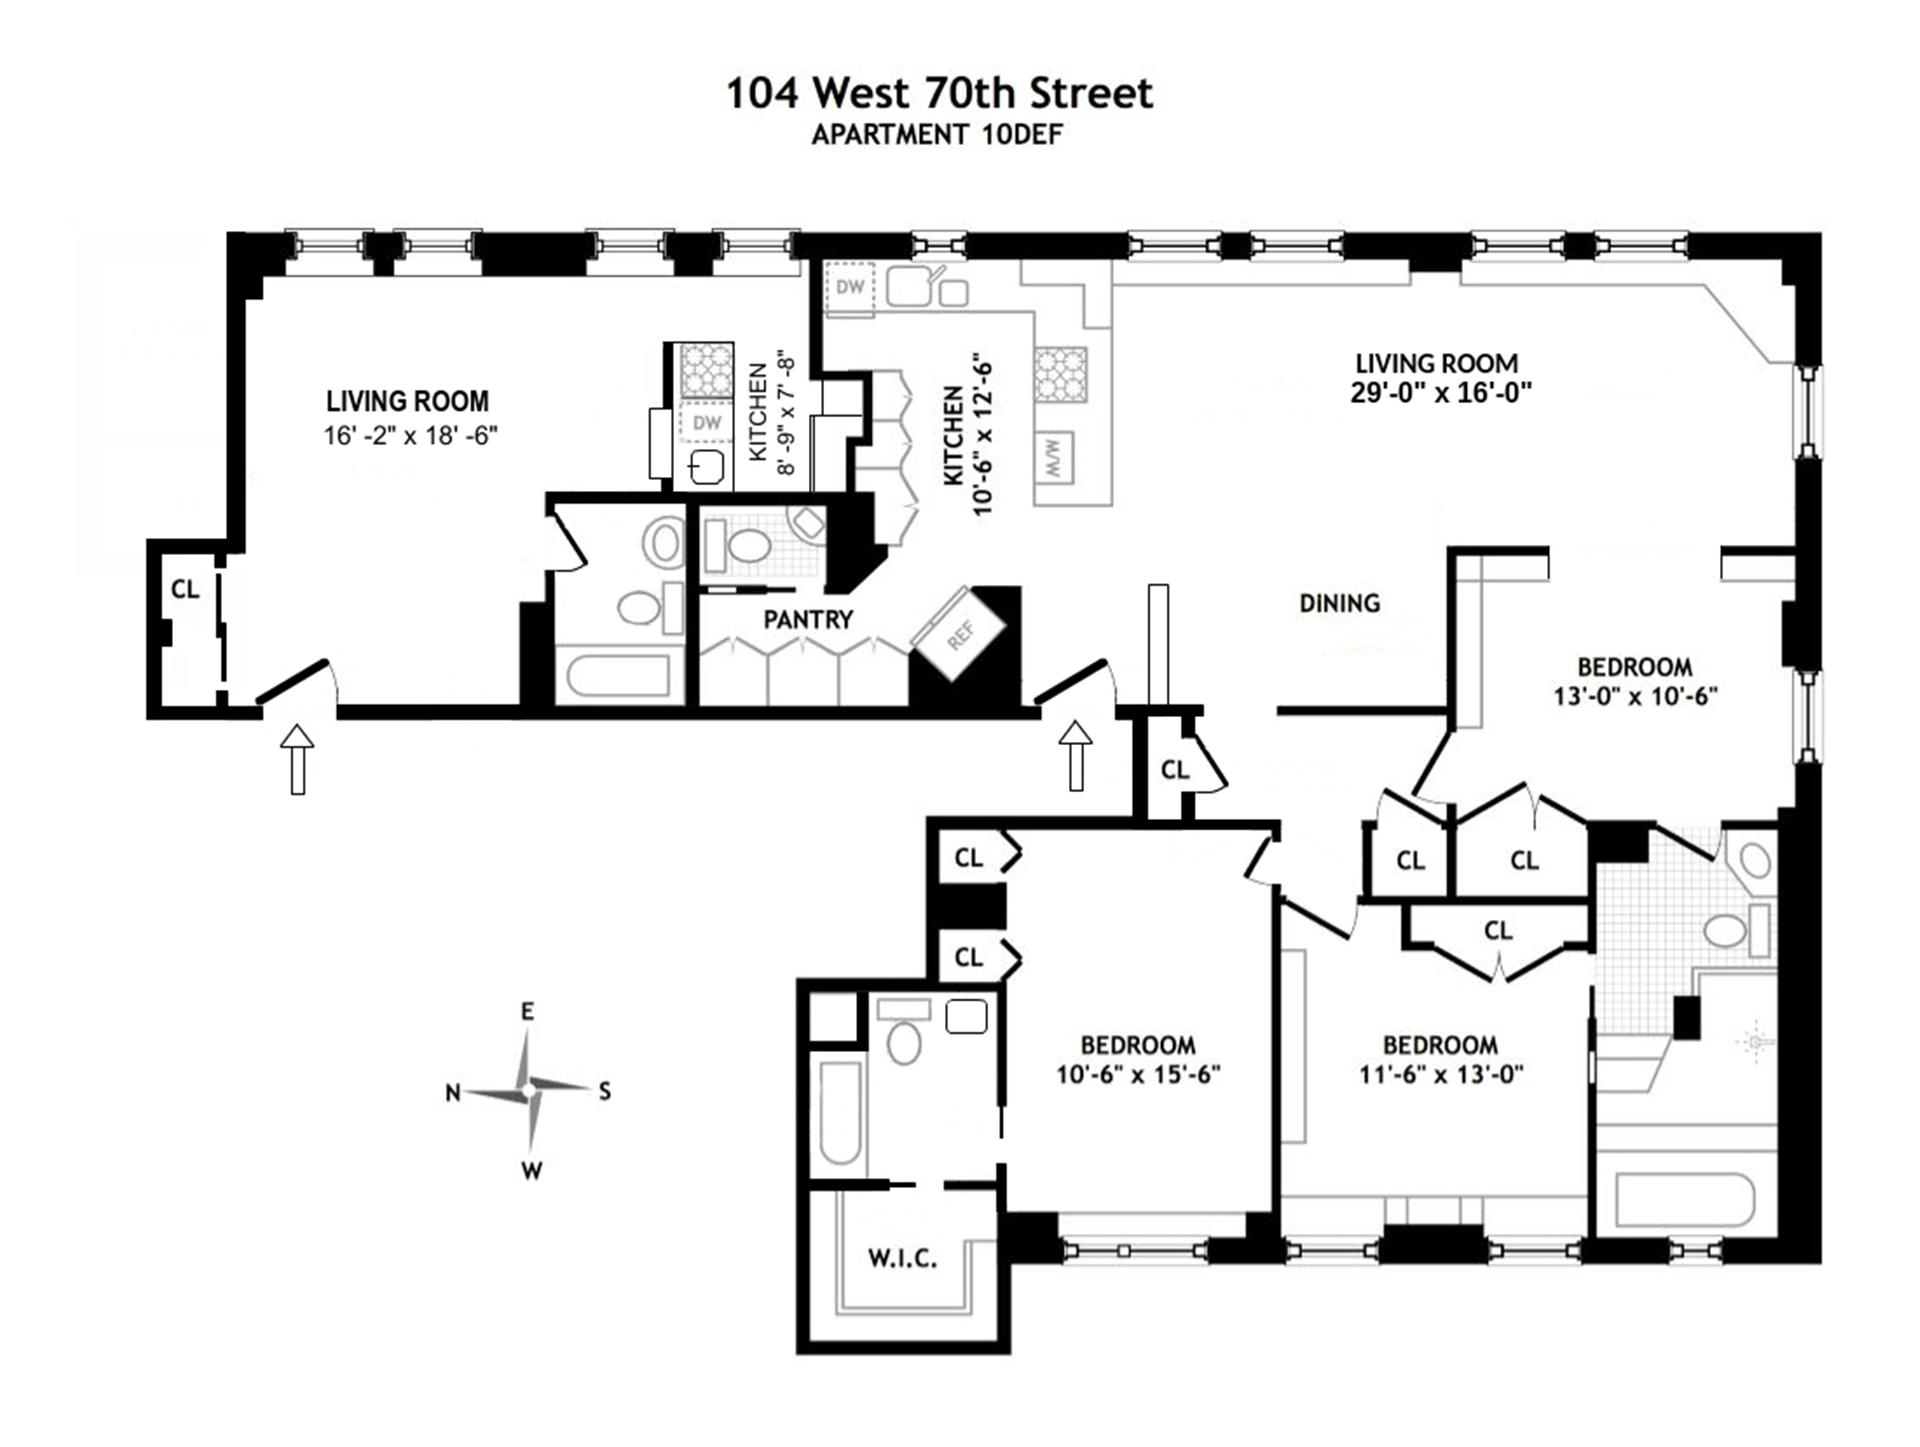 Floor plan of THE WALTON, 104 West 70th Street, 10DEF - Upper West Side, New York